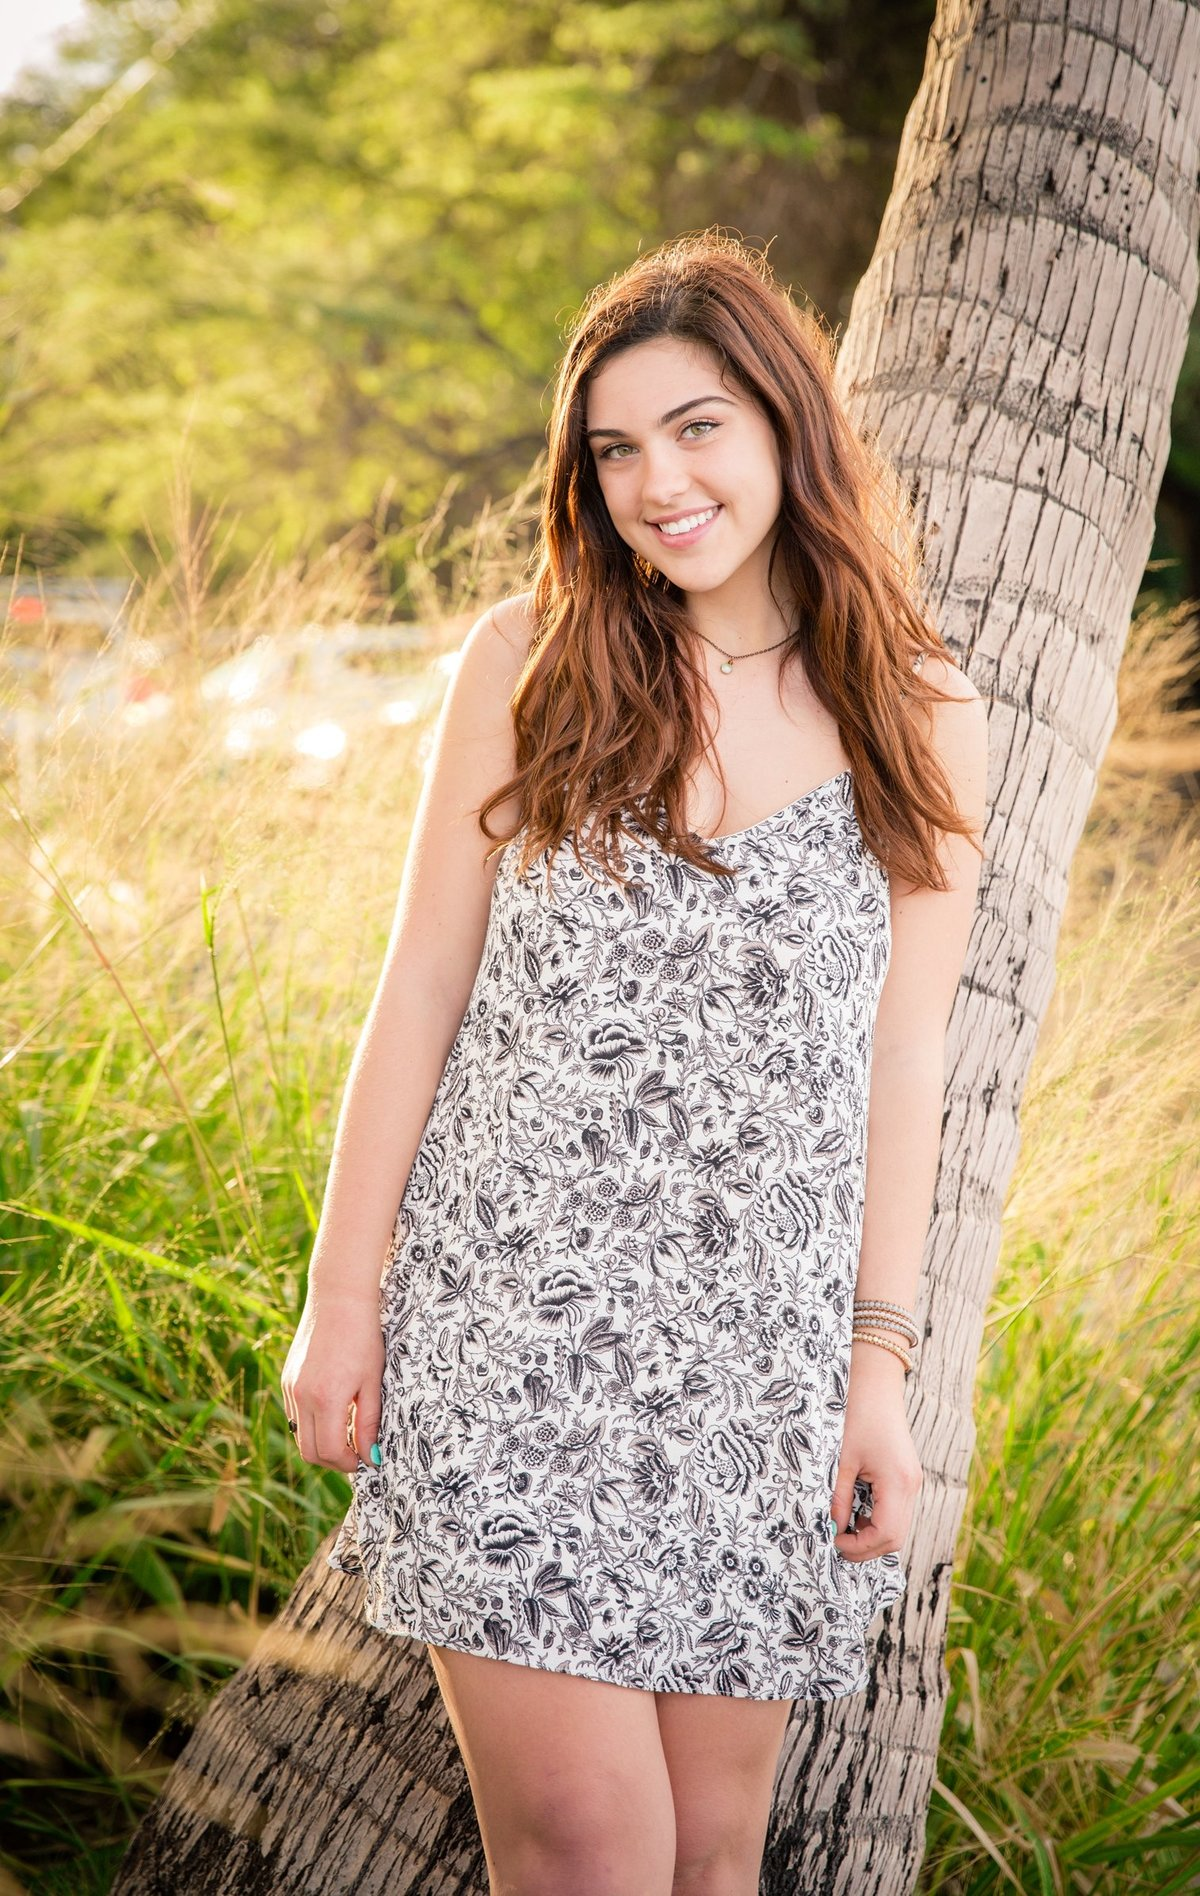 Capture Aloha Photography, Maui Senior Portrait Photography with  Beautiful Lady under the coconut tree with bunch of grass